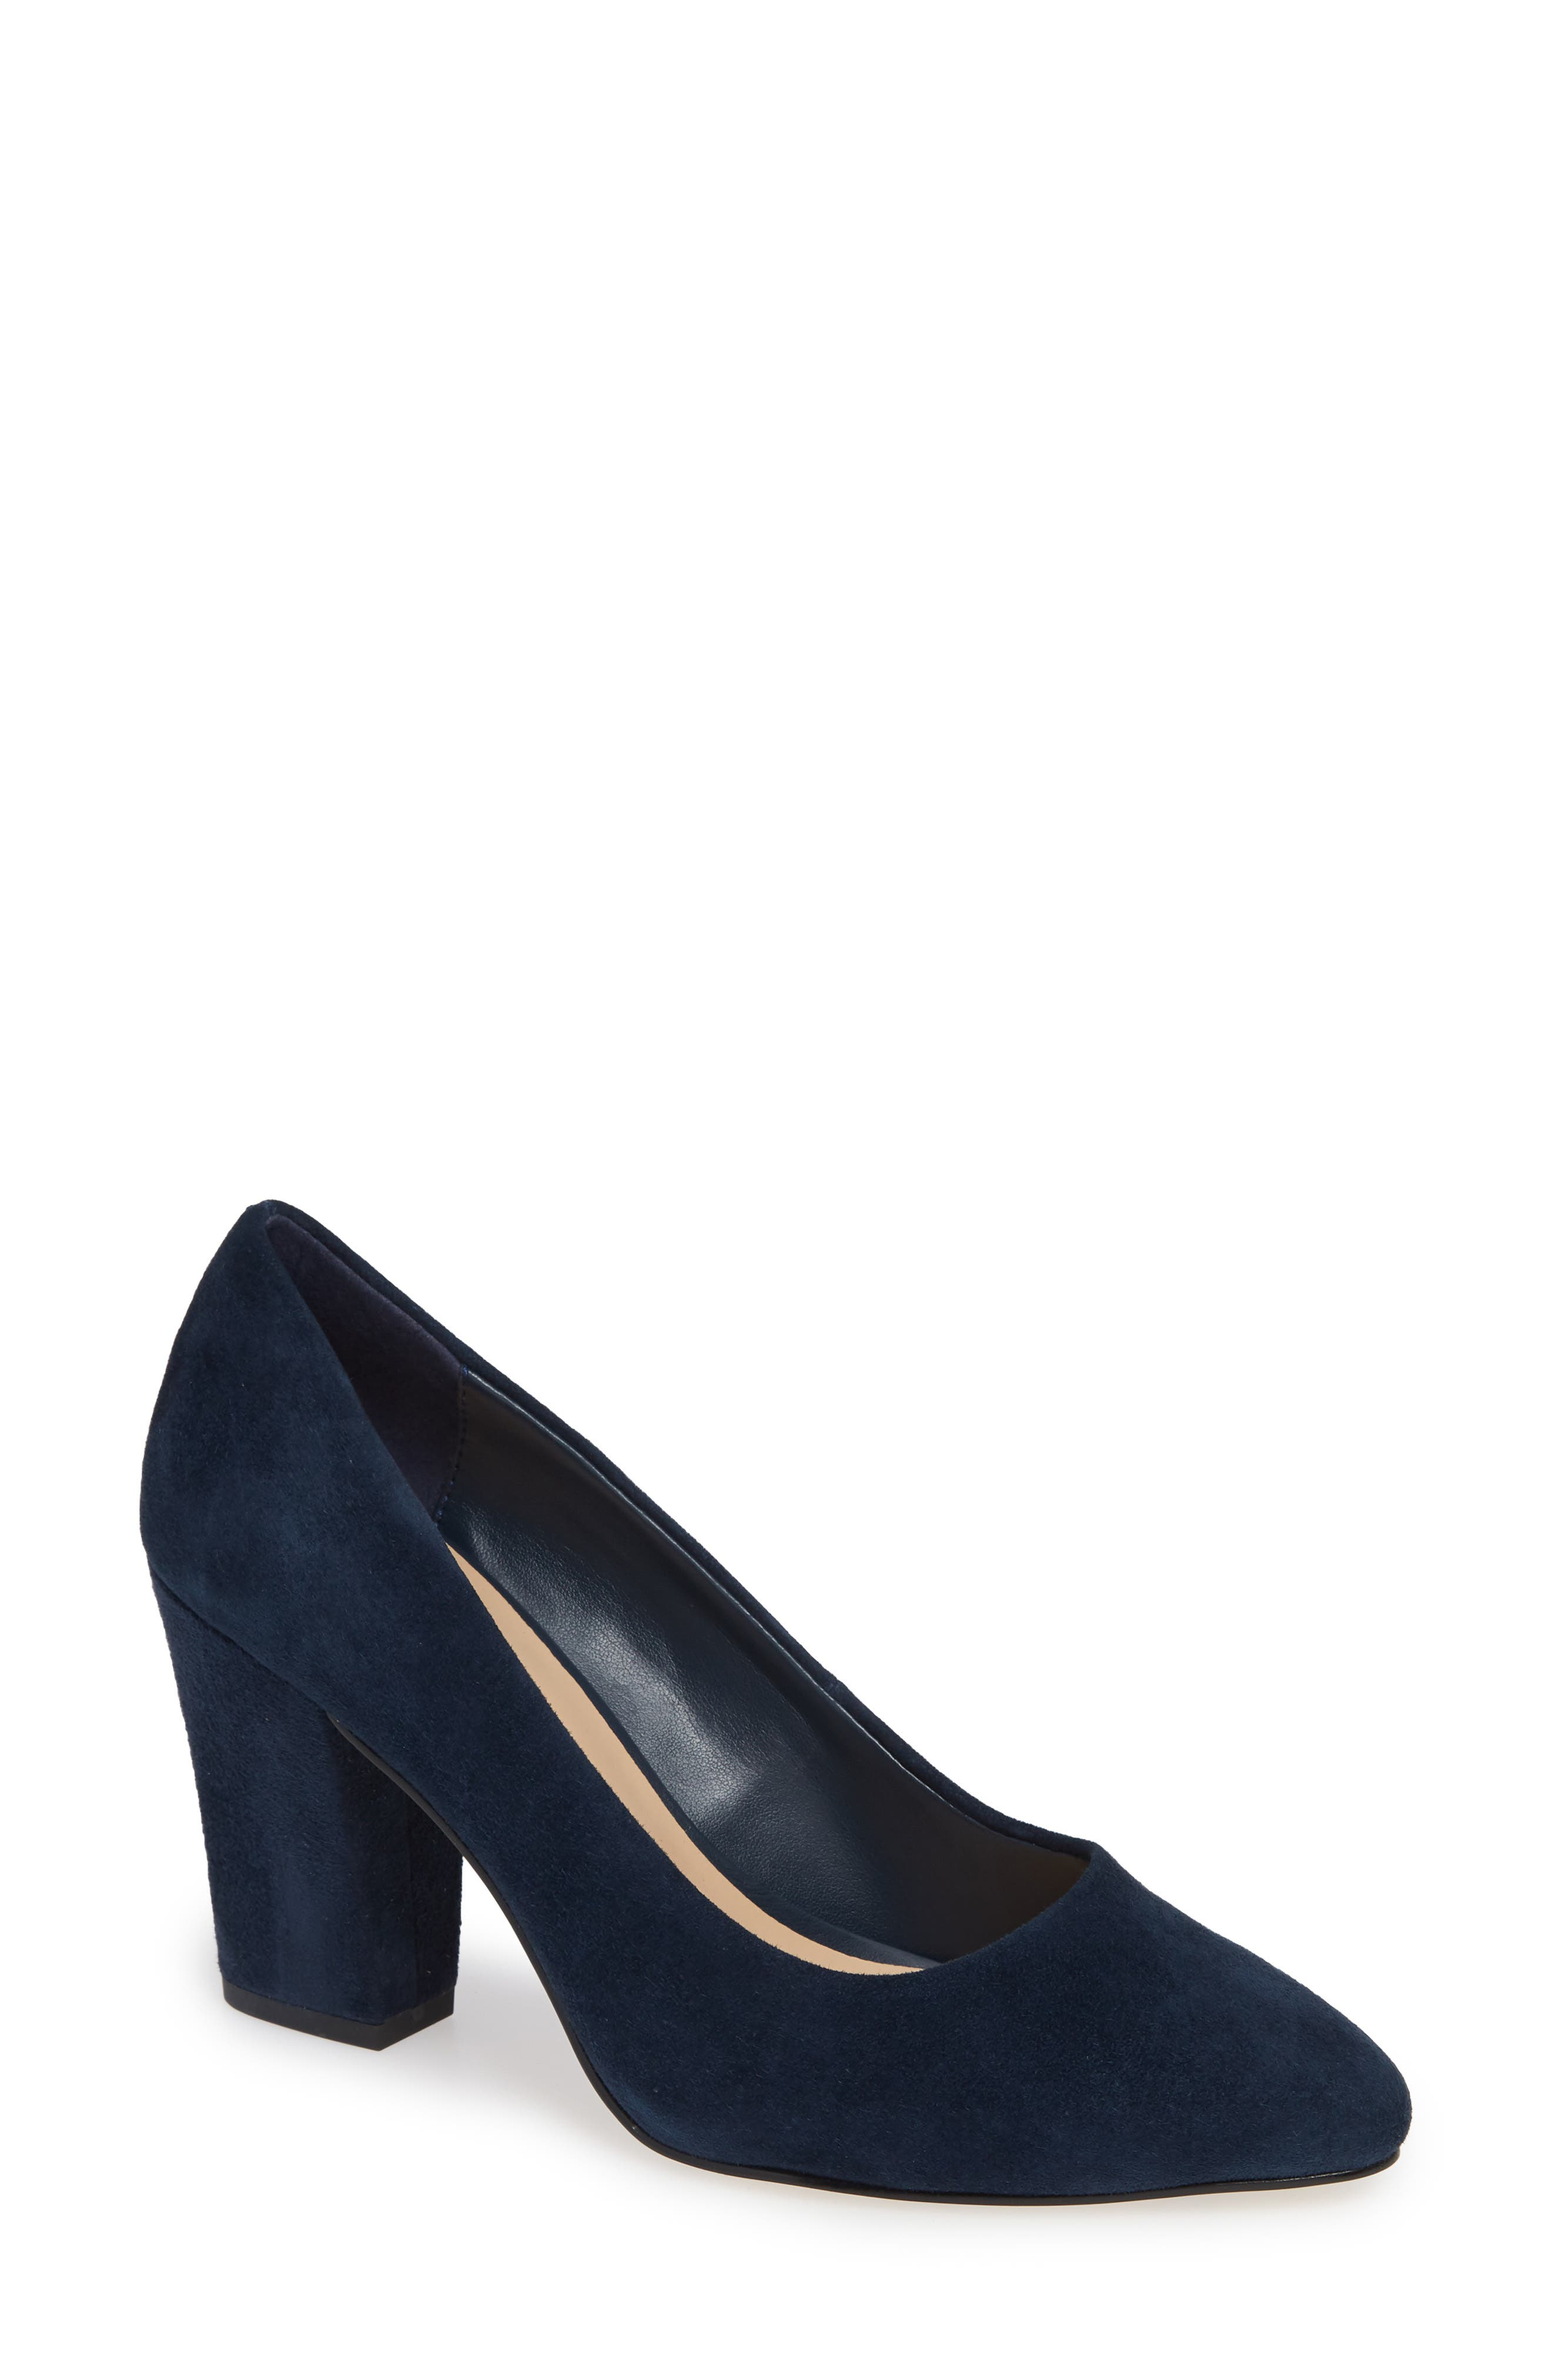 BELLA VITA, Gigi Pump, Main thumbnail 1, color, NAVY SUEDE